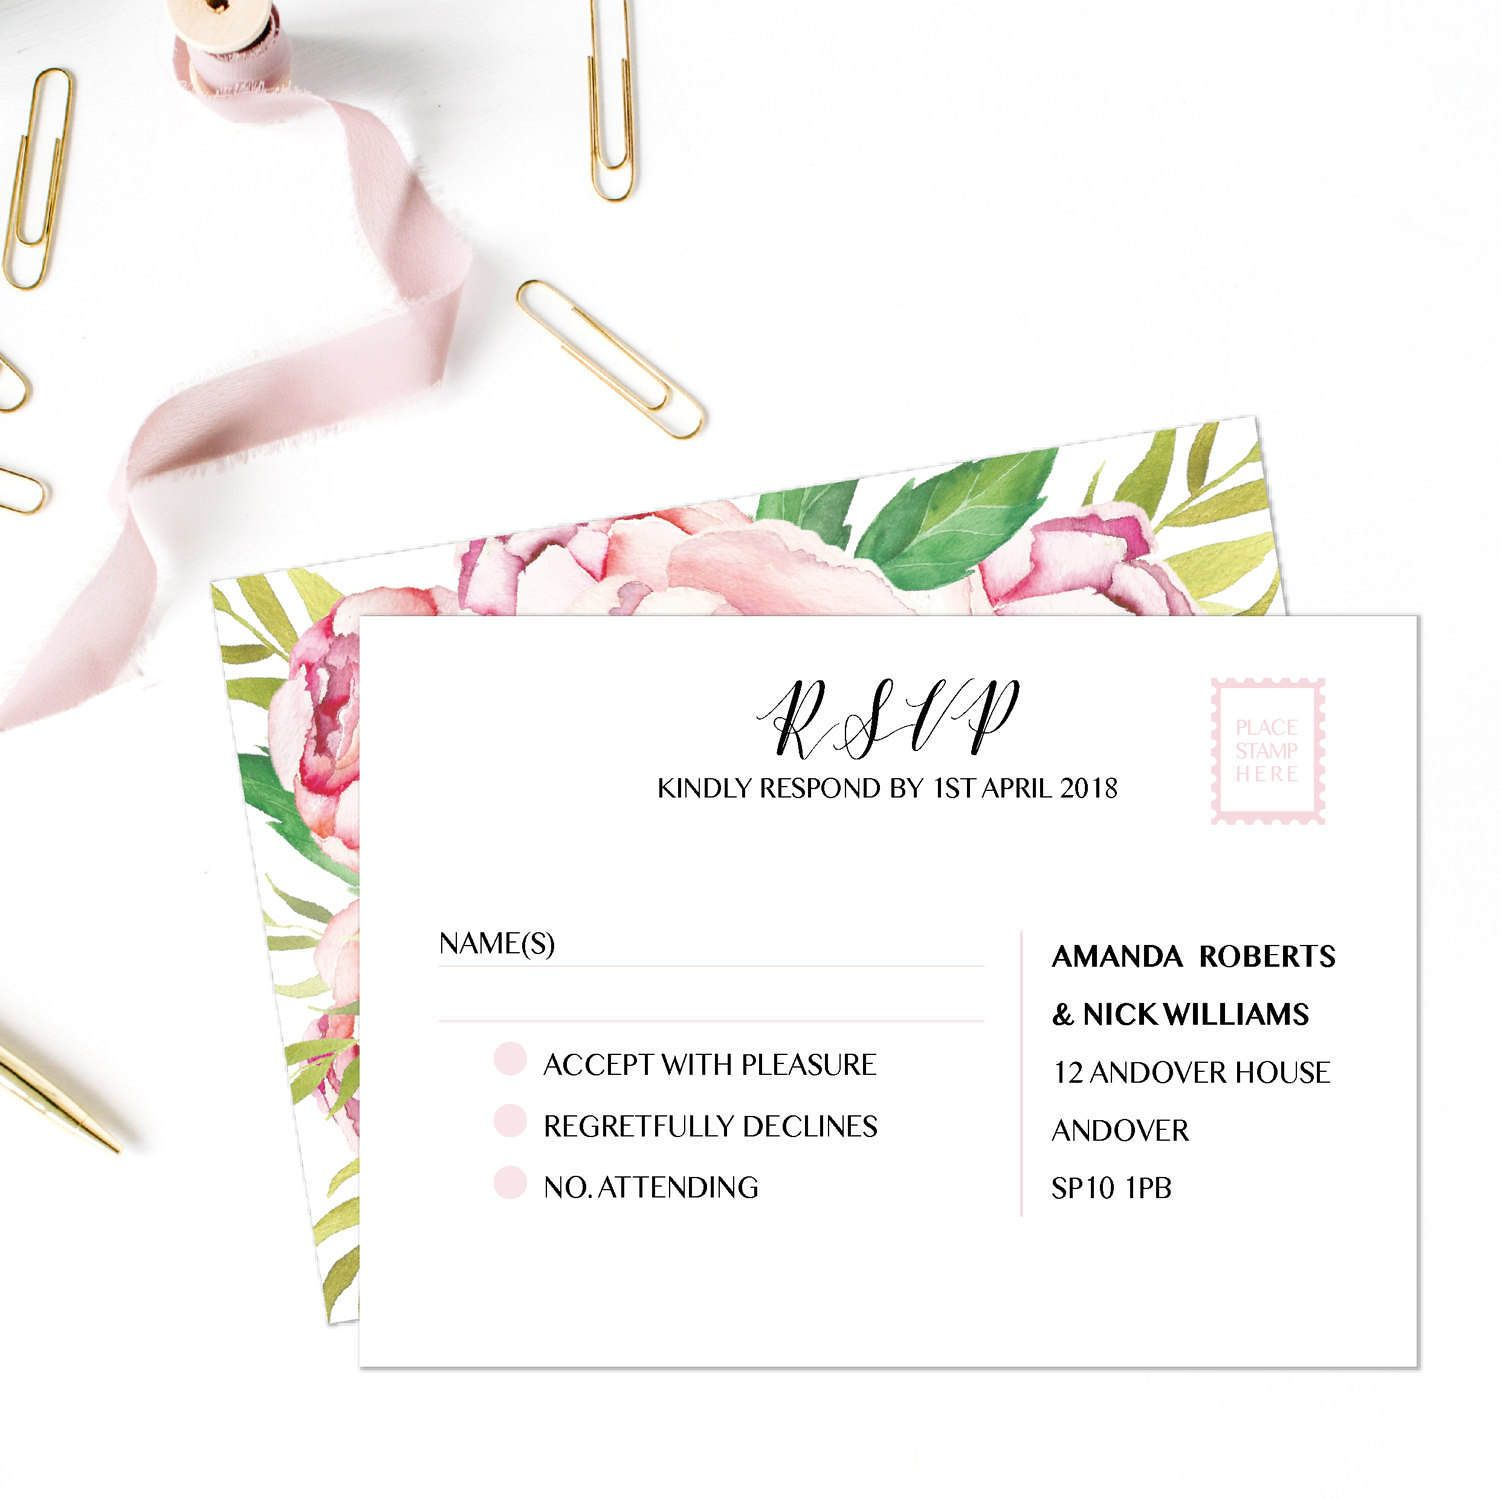 wedding invitation response card wedding invitation response card wording superb invitation superb invitation - Wedding Invitation Response Card